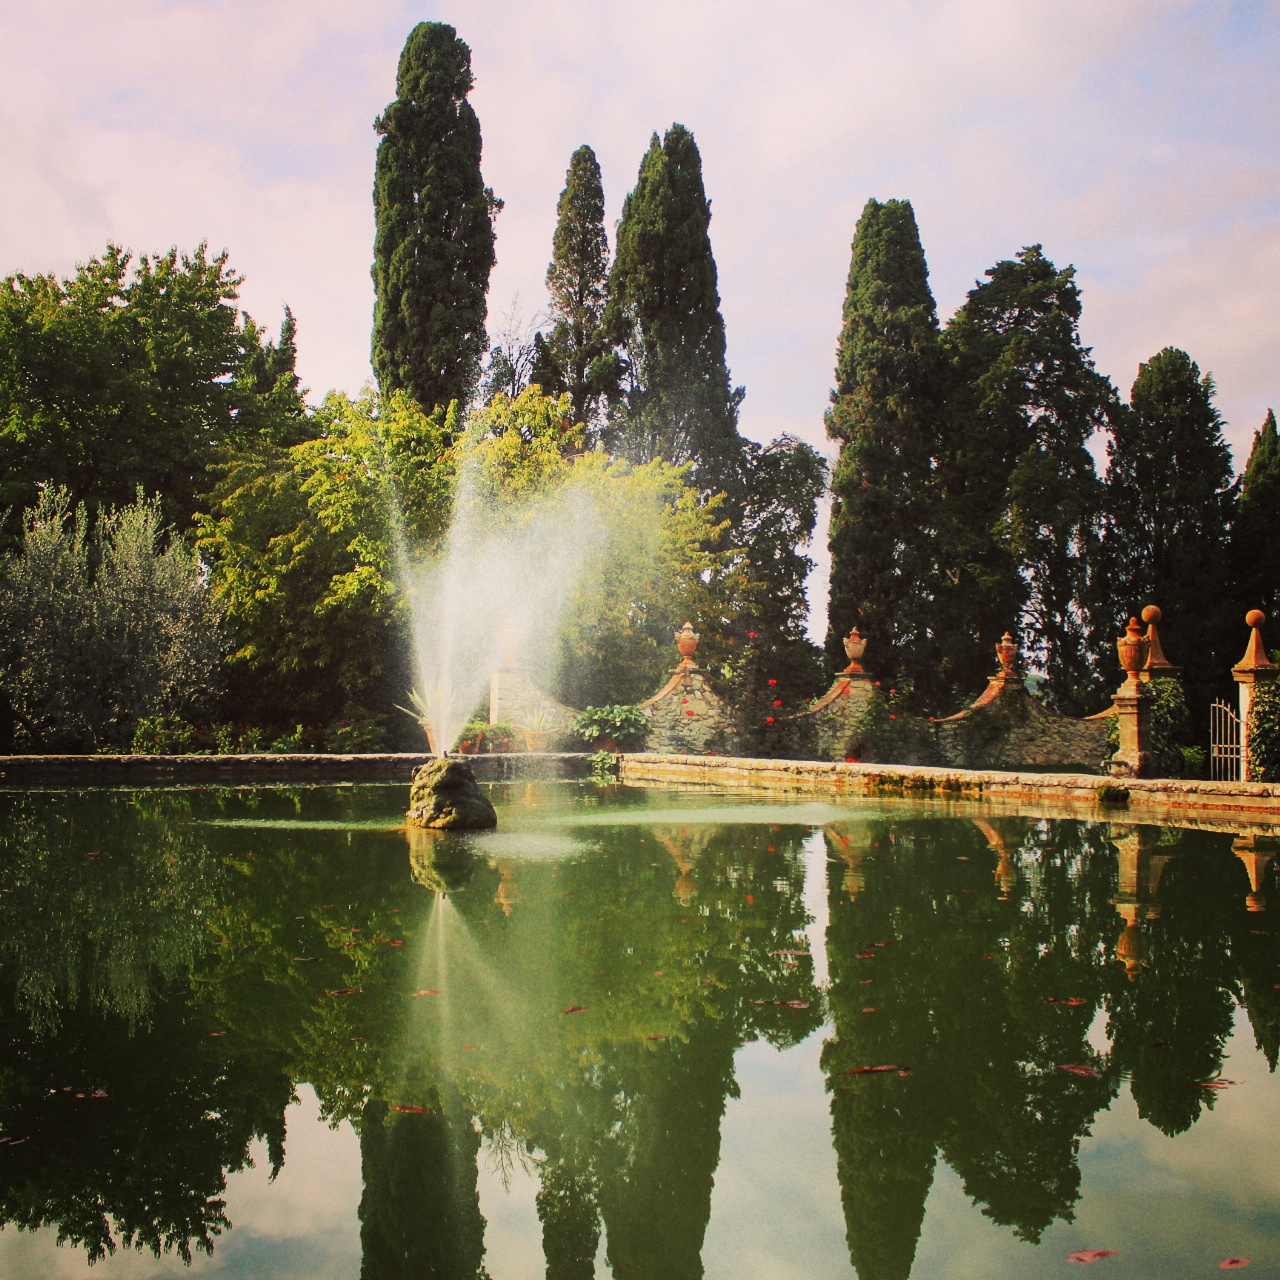 The fountain. Castello di Verrazzano